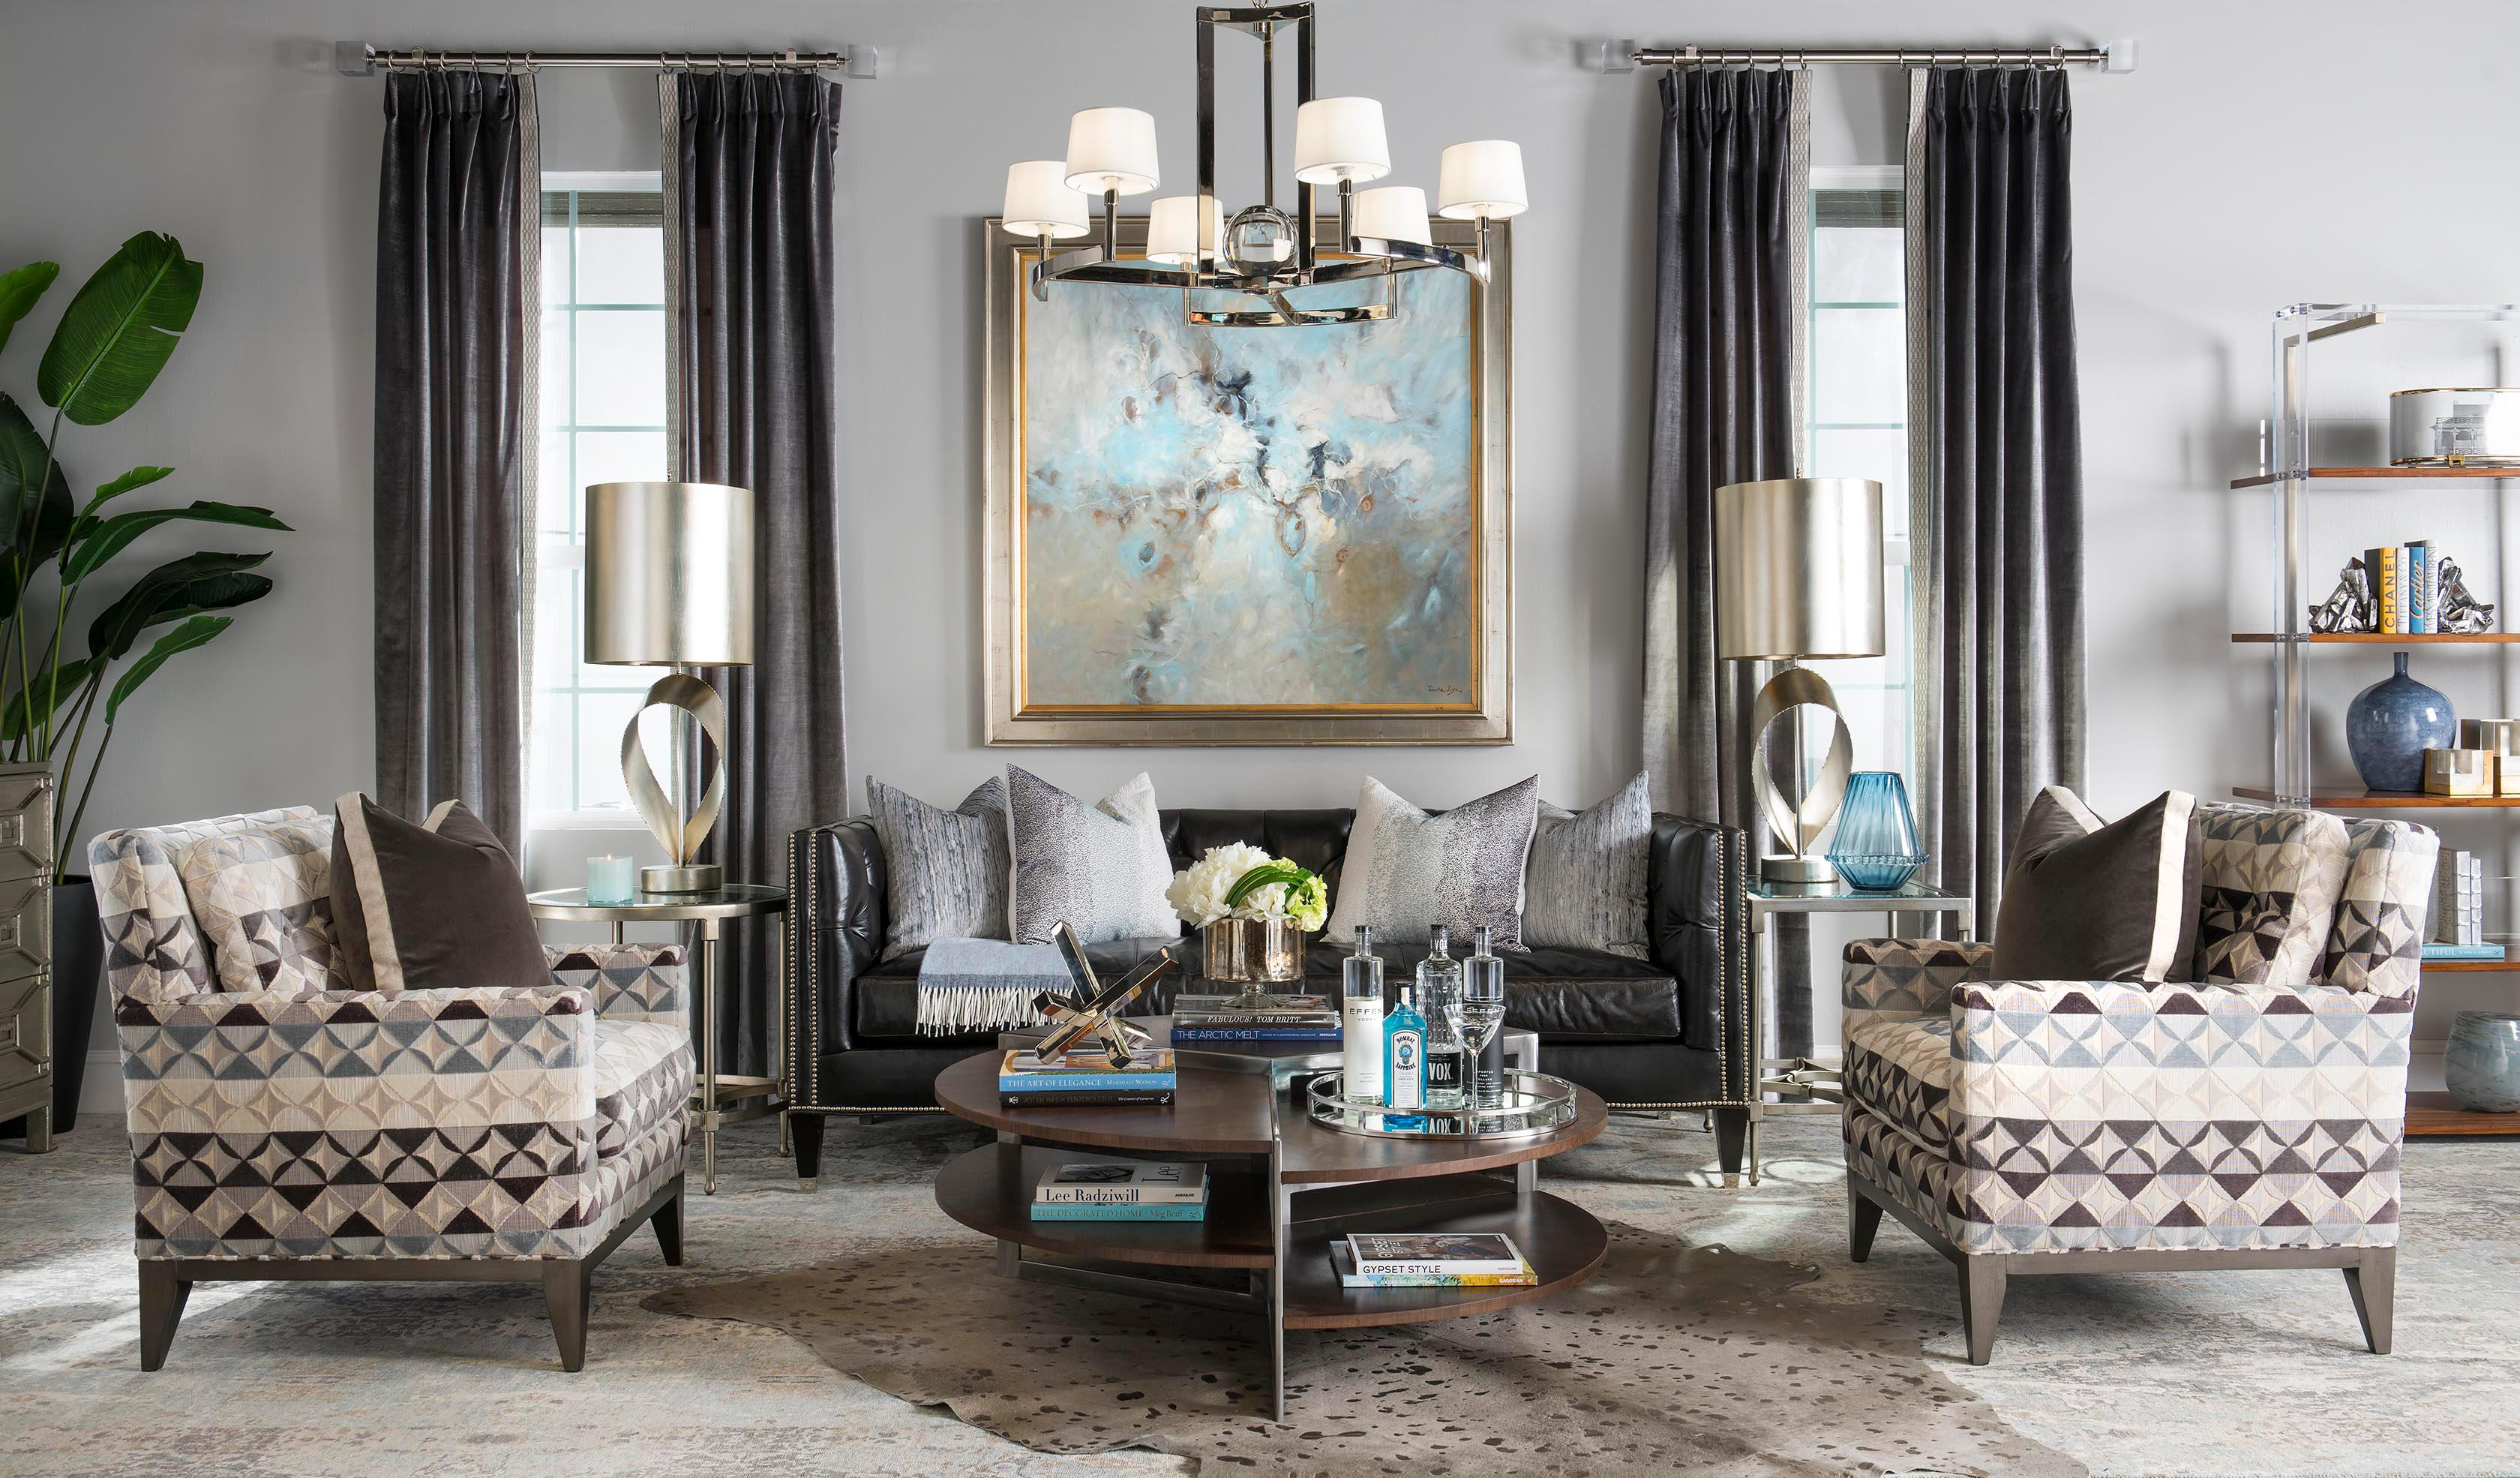 IBB Design Fine Furnishings 5798 Genesis Court Frisco, TX ... on batman design, dubai design, berlin design, ive design, ibew design, obj design, yemen design, rth design,